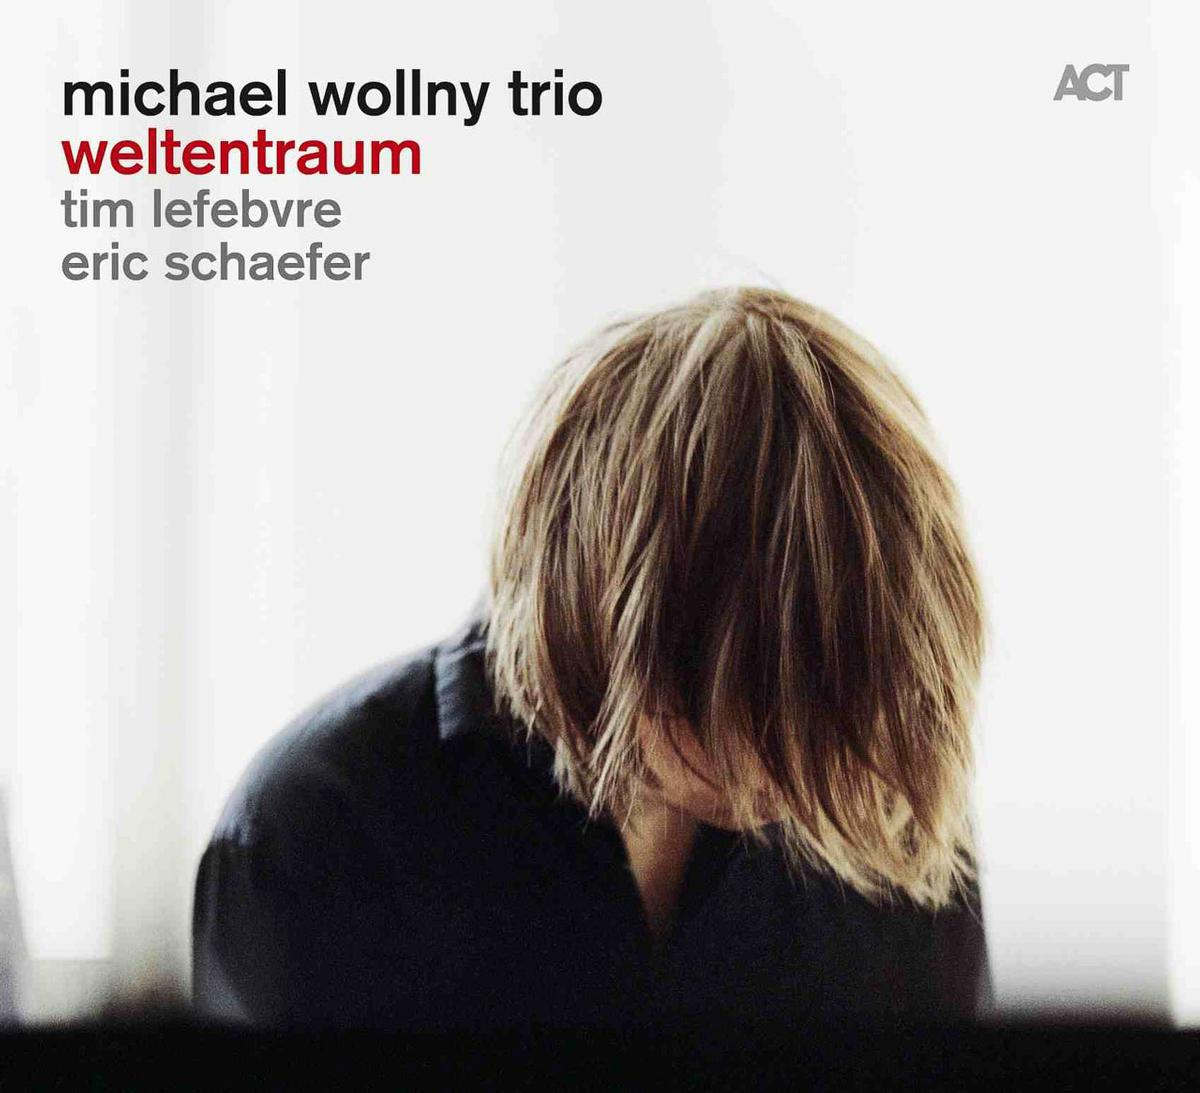 Michael Wollny Trio